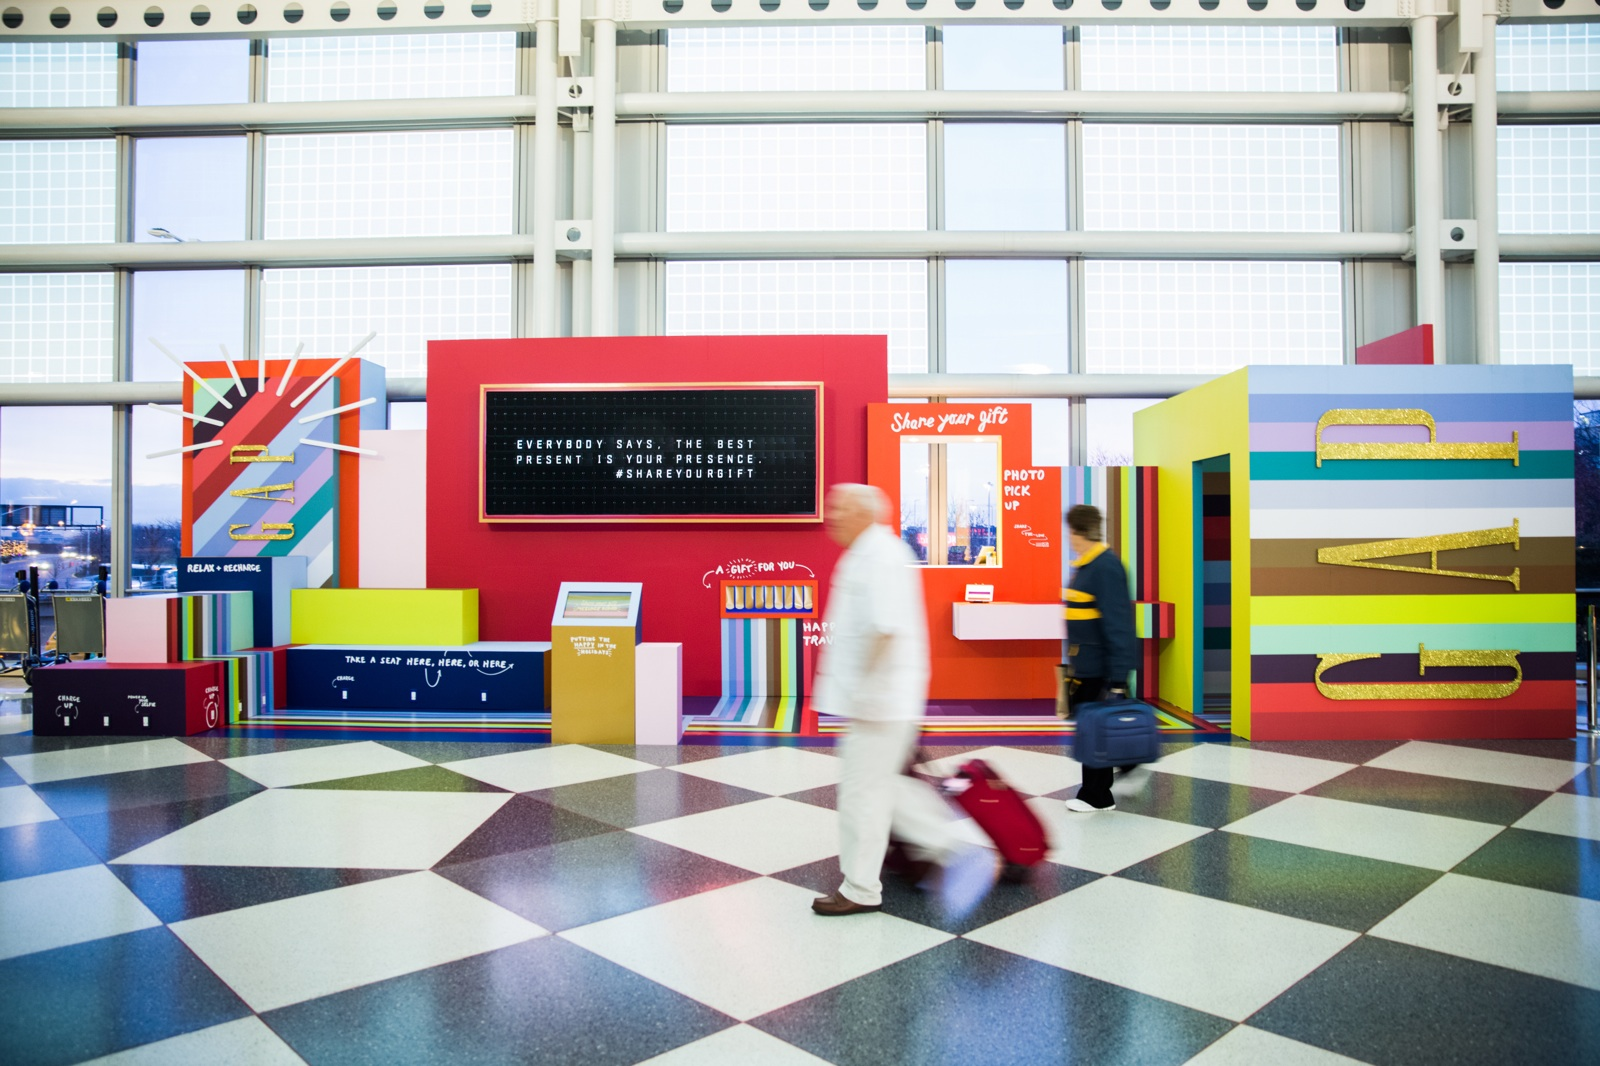 Gap, Retail, Holiday, Market, Pop up, Event, Activation, Chicago, O'Hare Airport, Invisible North, Strategy, Design, Production, Trend, brand, experience, experiential, Agency, gifting, lounge, airport